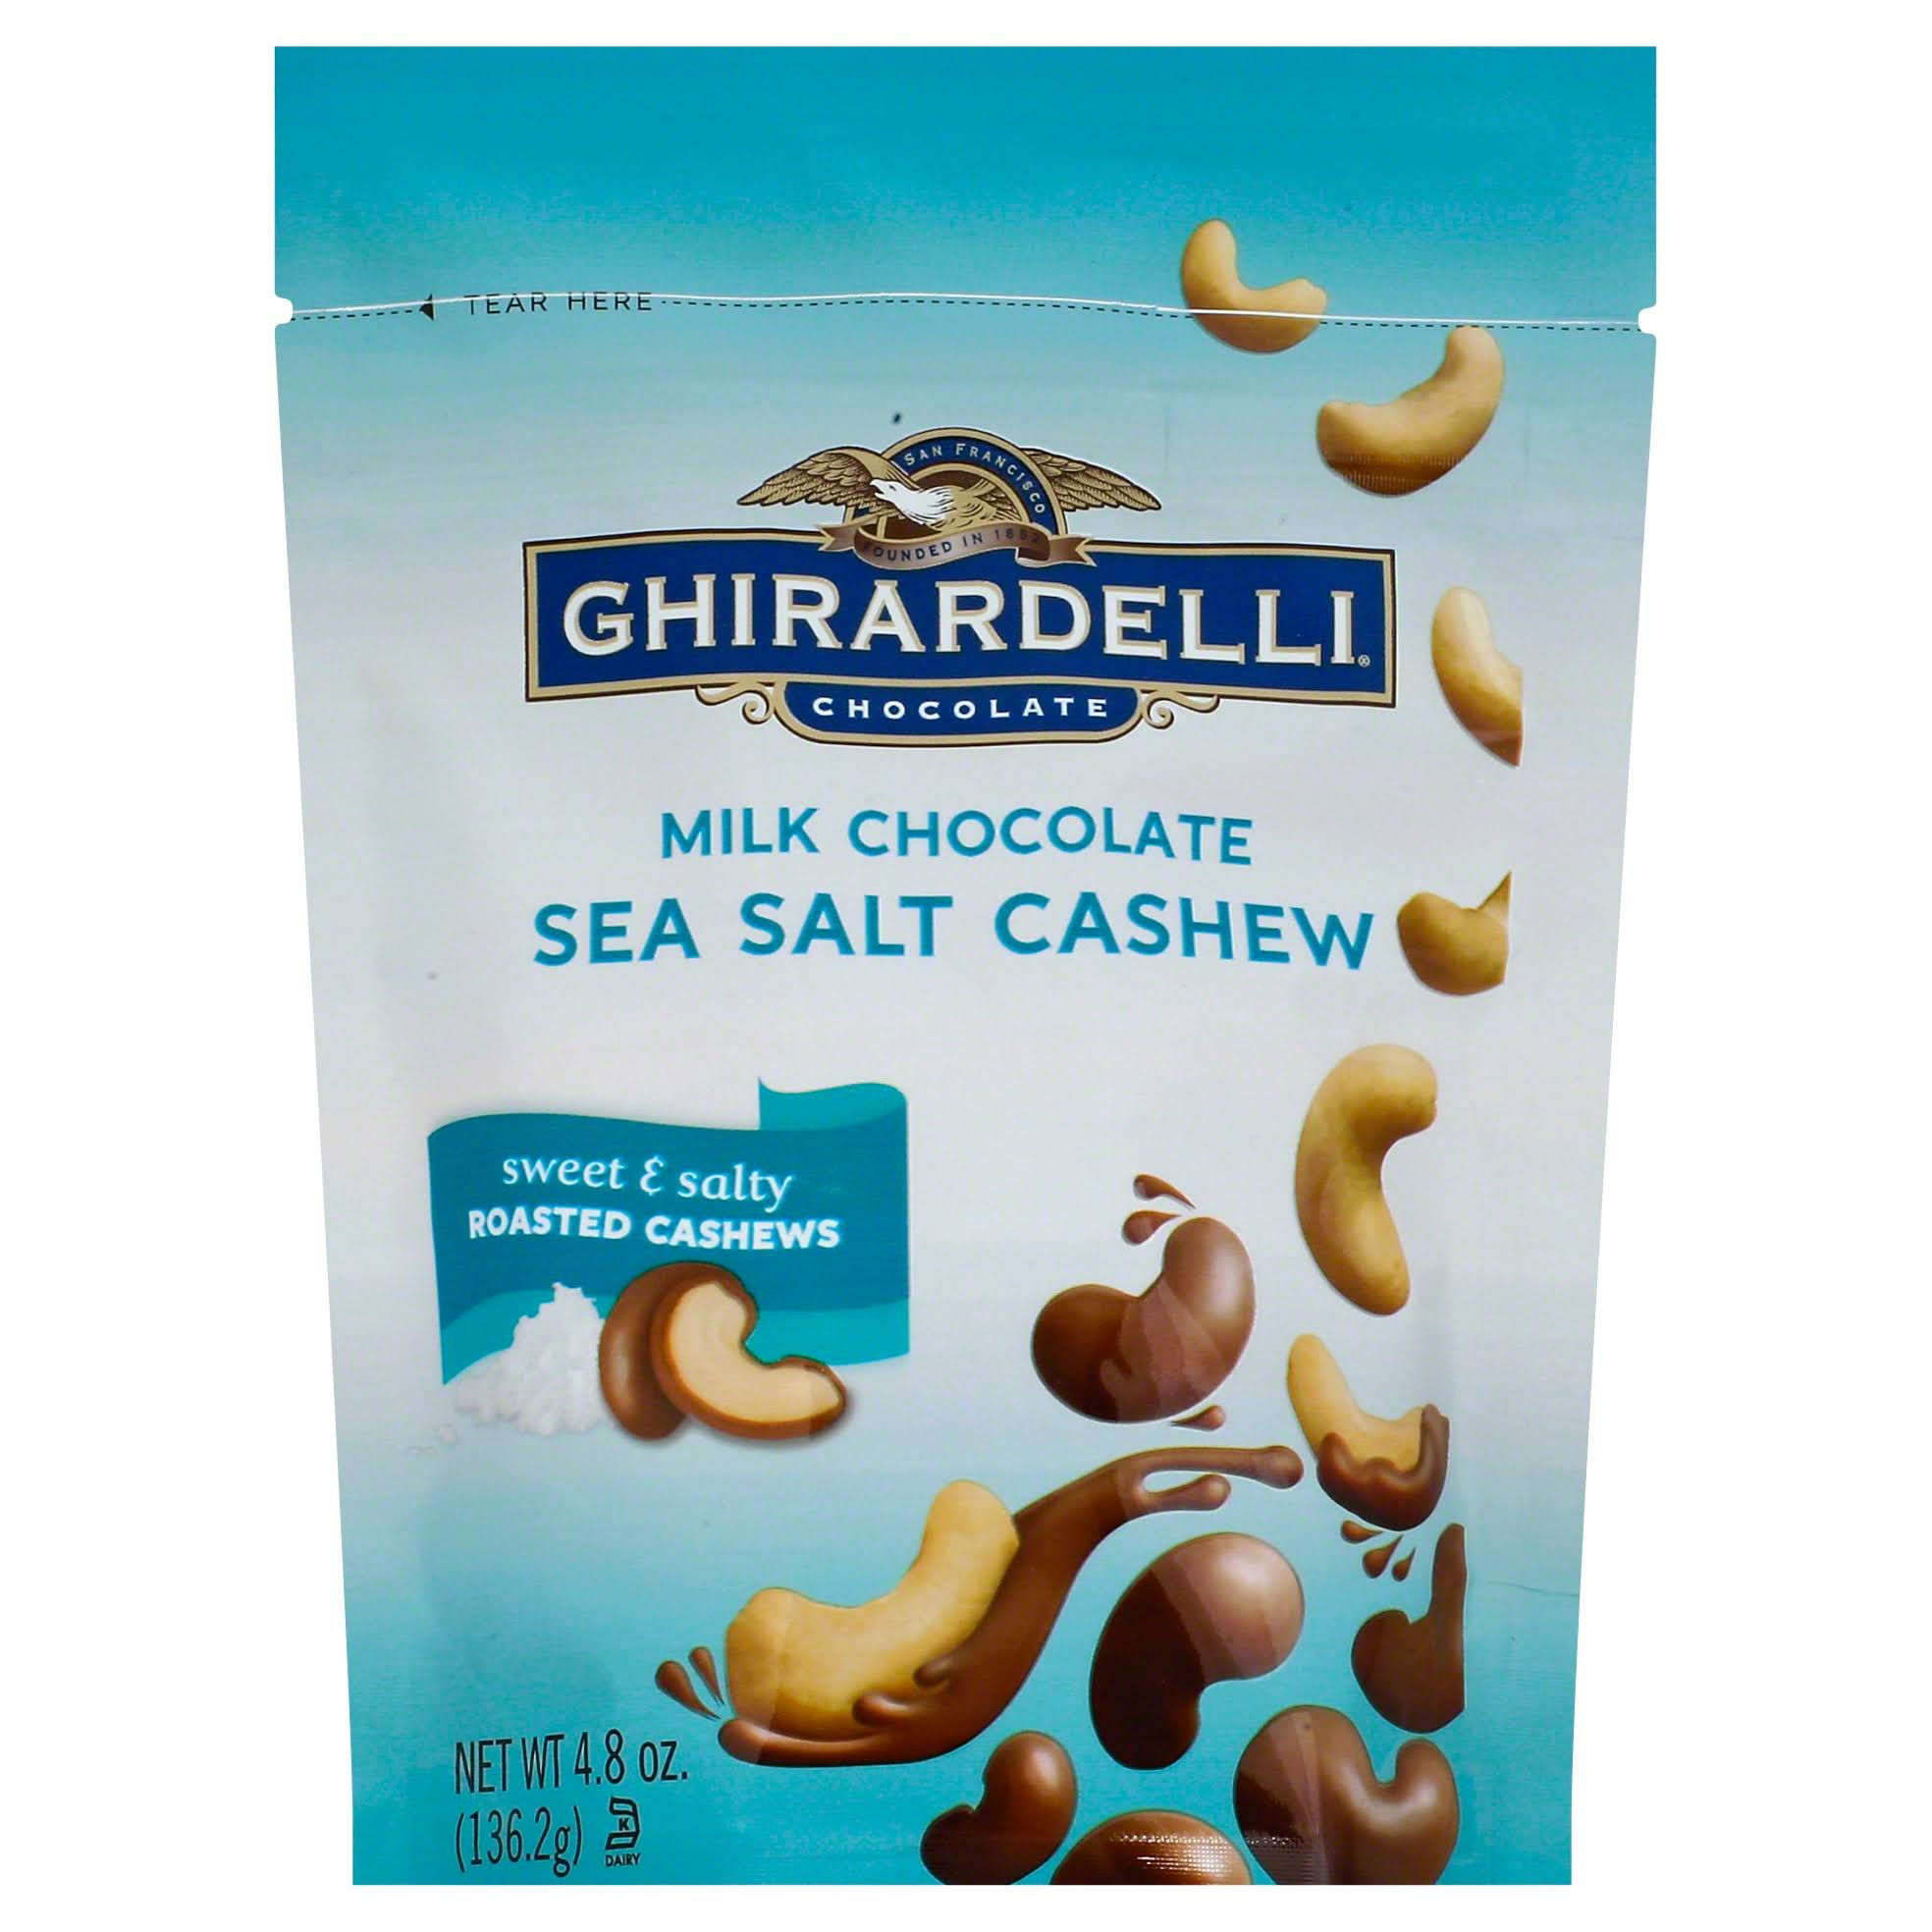 Ghirardelli Milk Chocolate - Sea Salt Cashew, 4.8oz